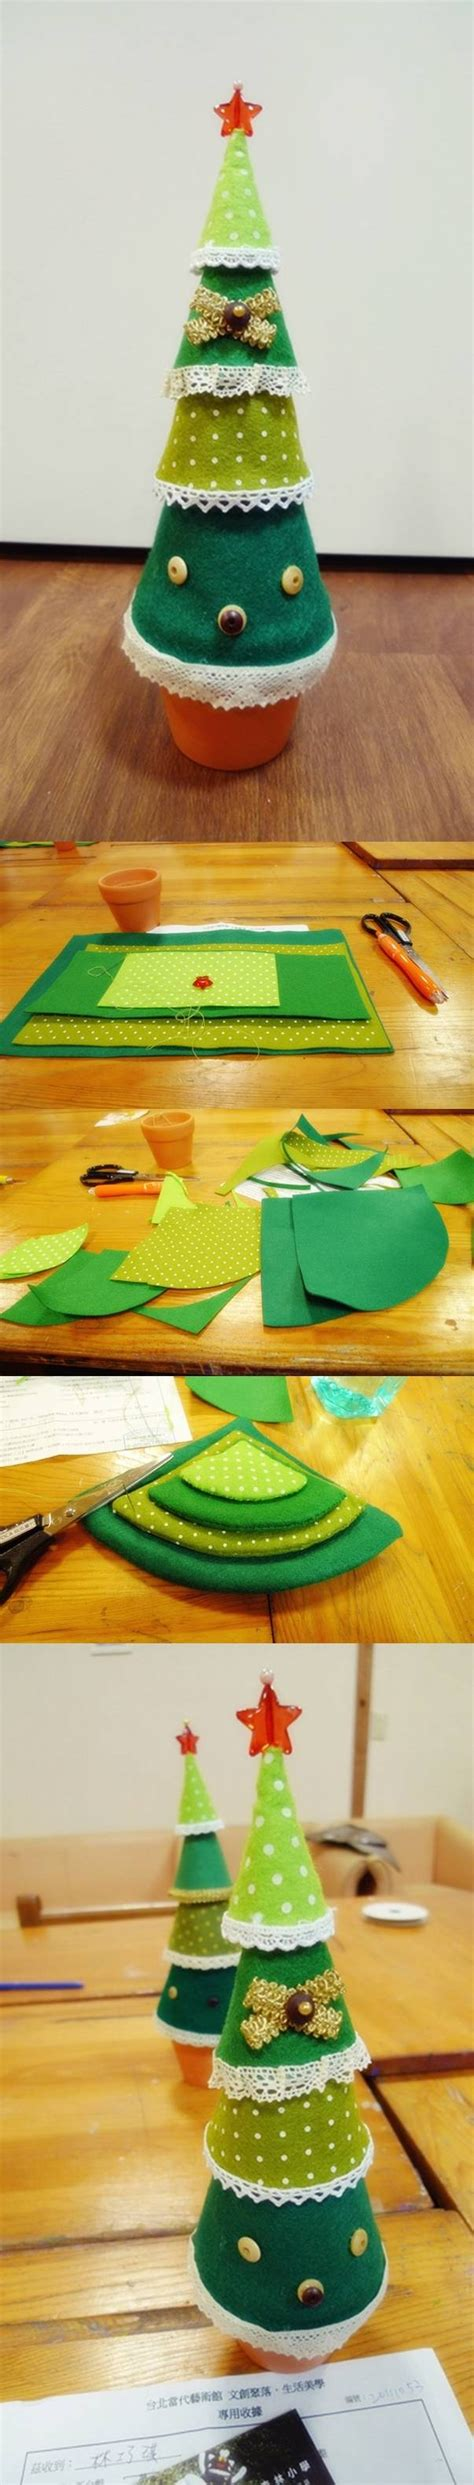 Diy Easy Felt Christmas Tree Pictures, Photos, And Images